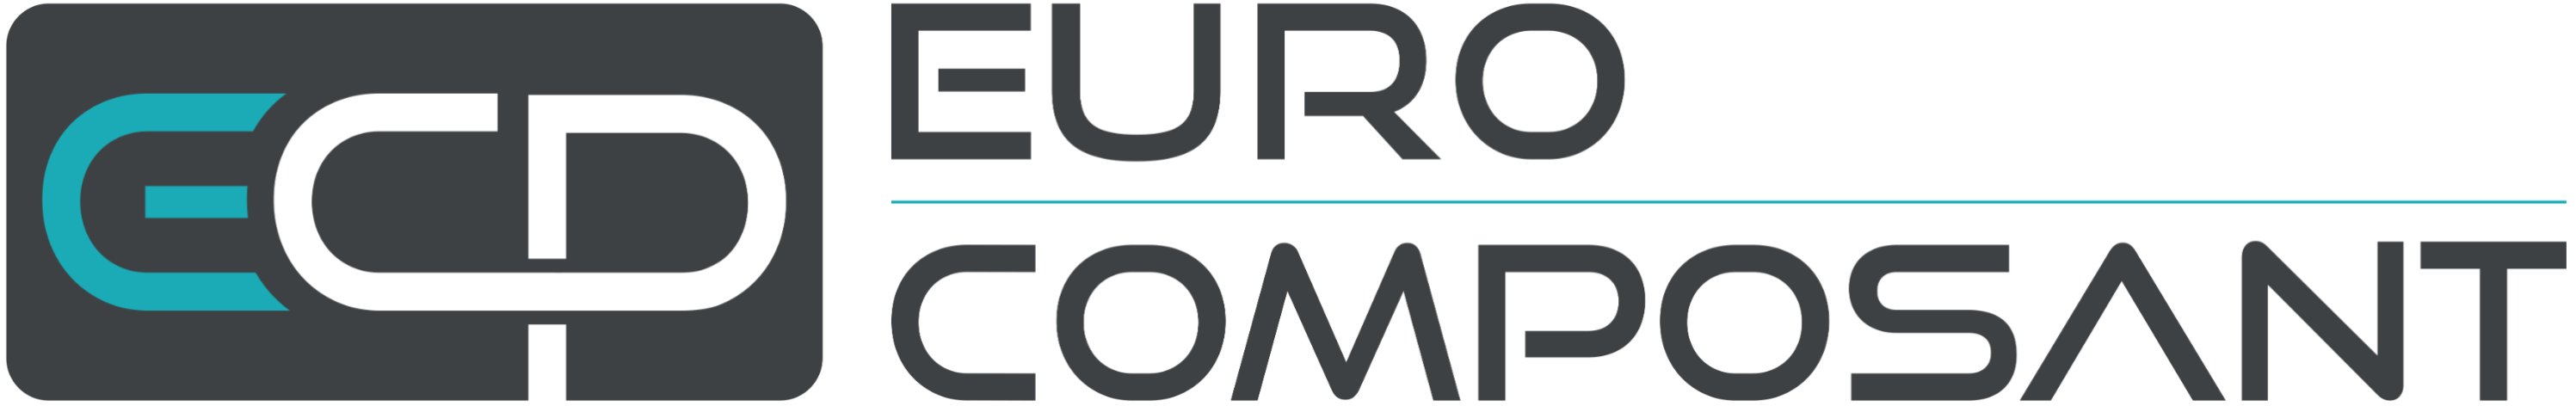 Logo EUROCOMPOSANT